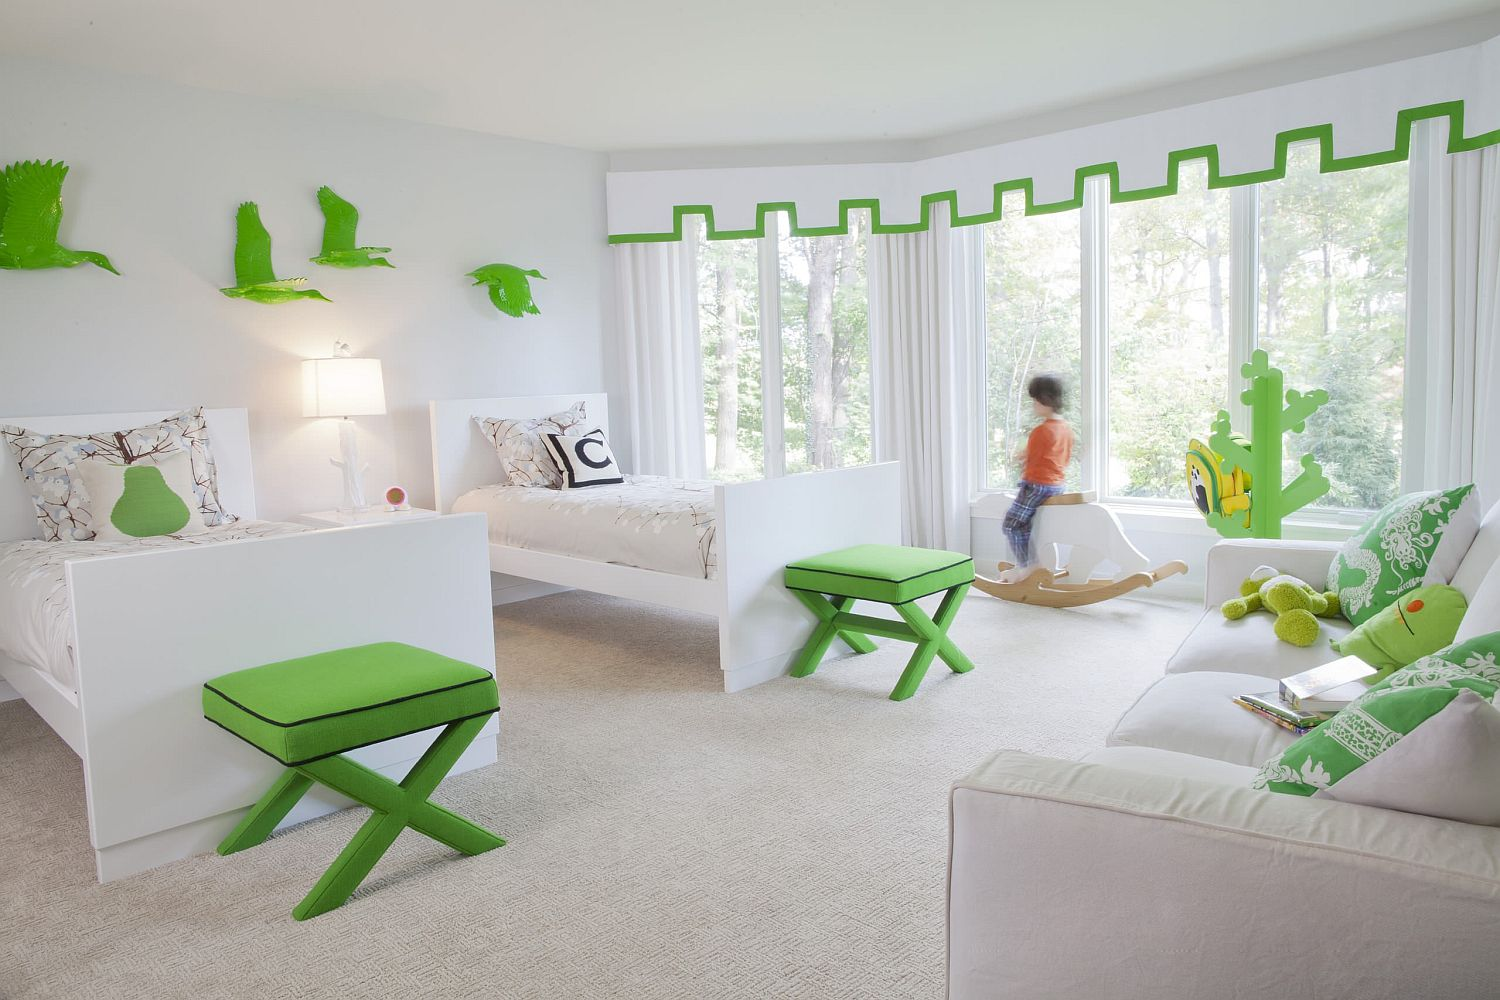 1558531606 250 30 fabulous kids room color trends for warmer months ahead - 30 Fabulous Kids' Room Color Trends for Warmer Months Ahead